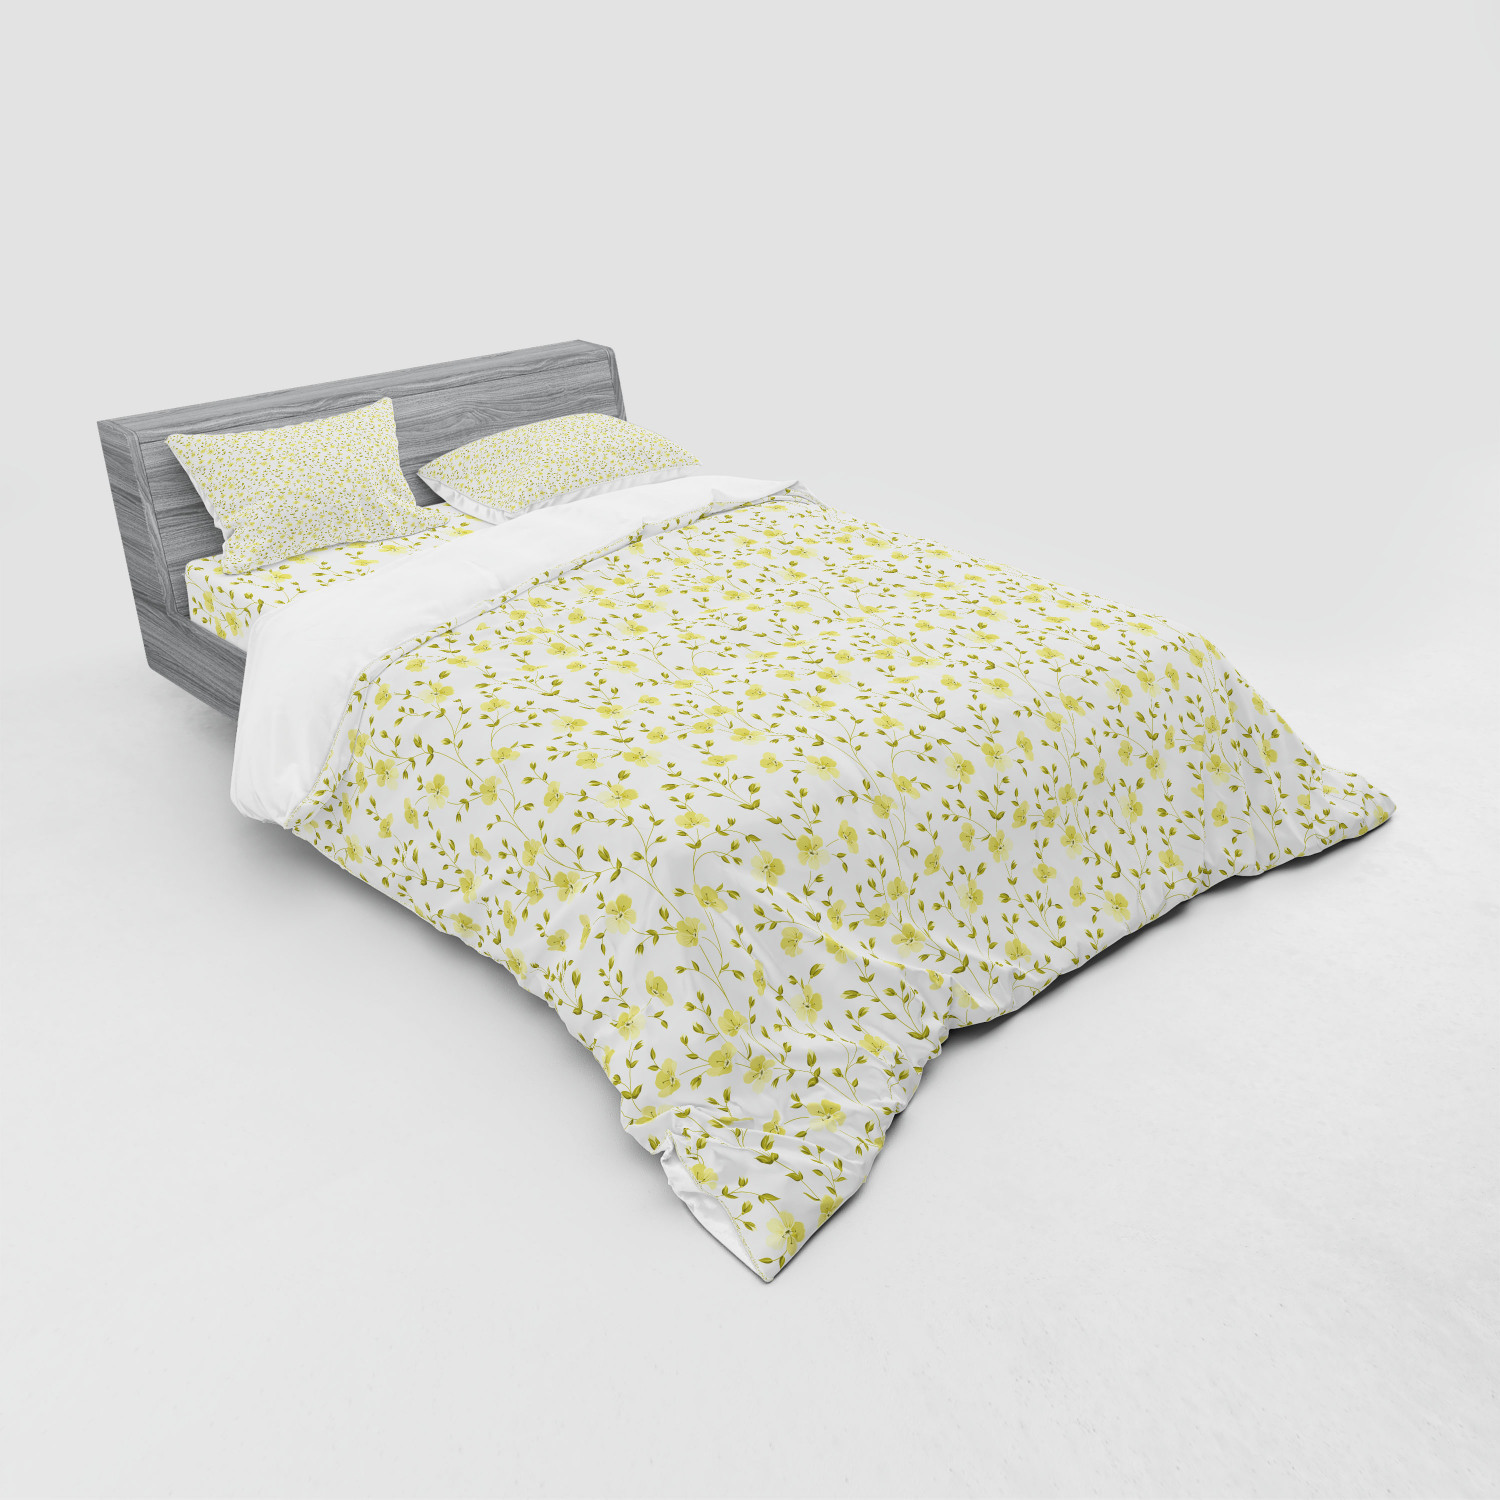 thumbnail 75 - Ambesonne Summer Bedding Set Duvet Cover Sham Fitted Sheet in 3 Sizes